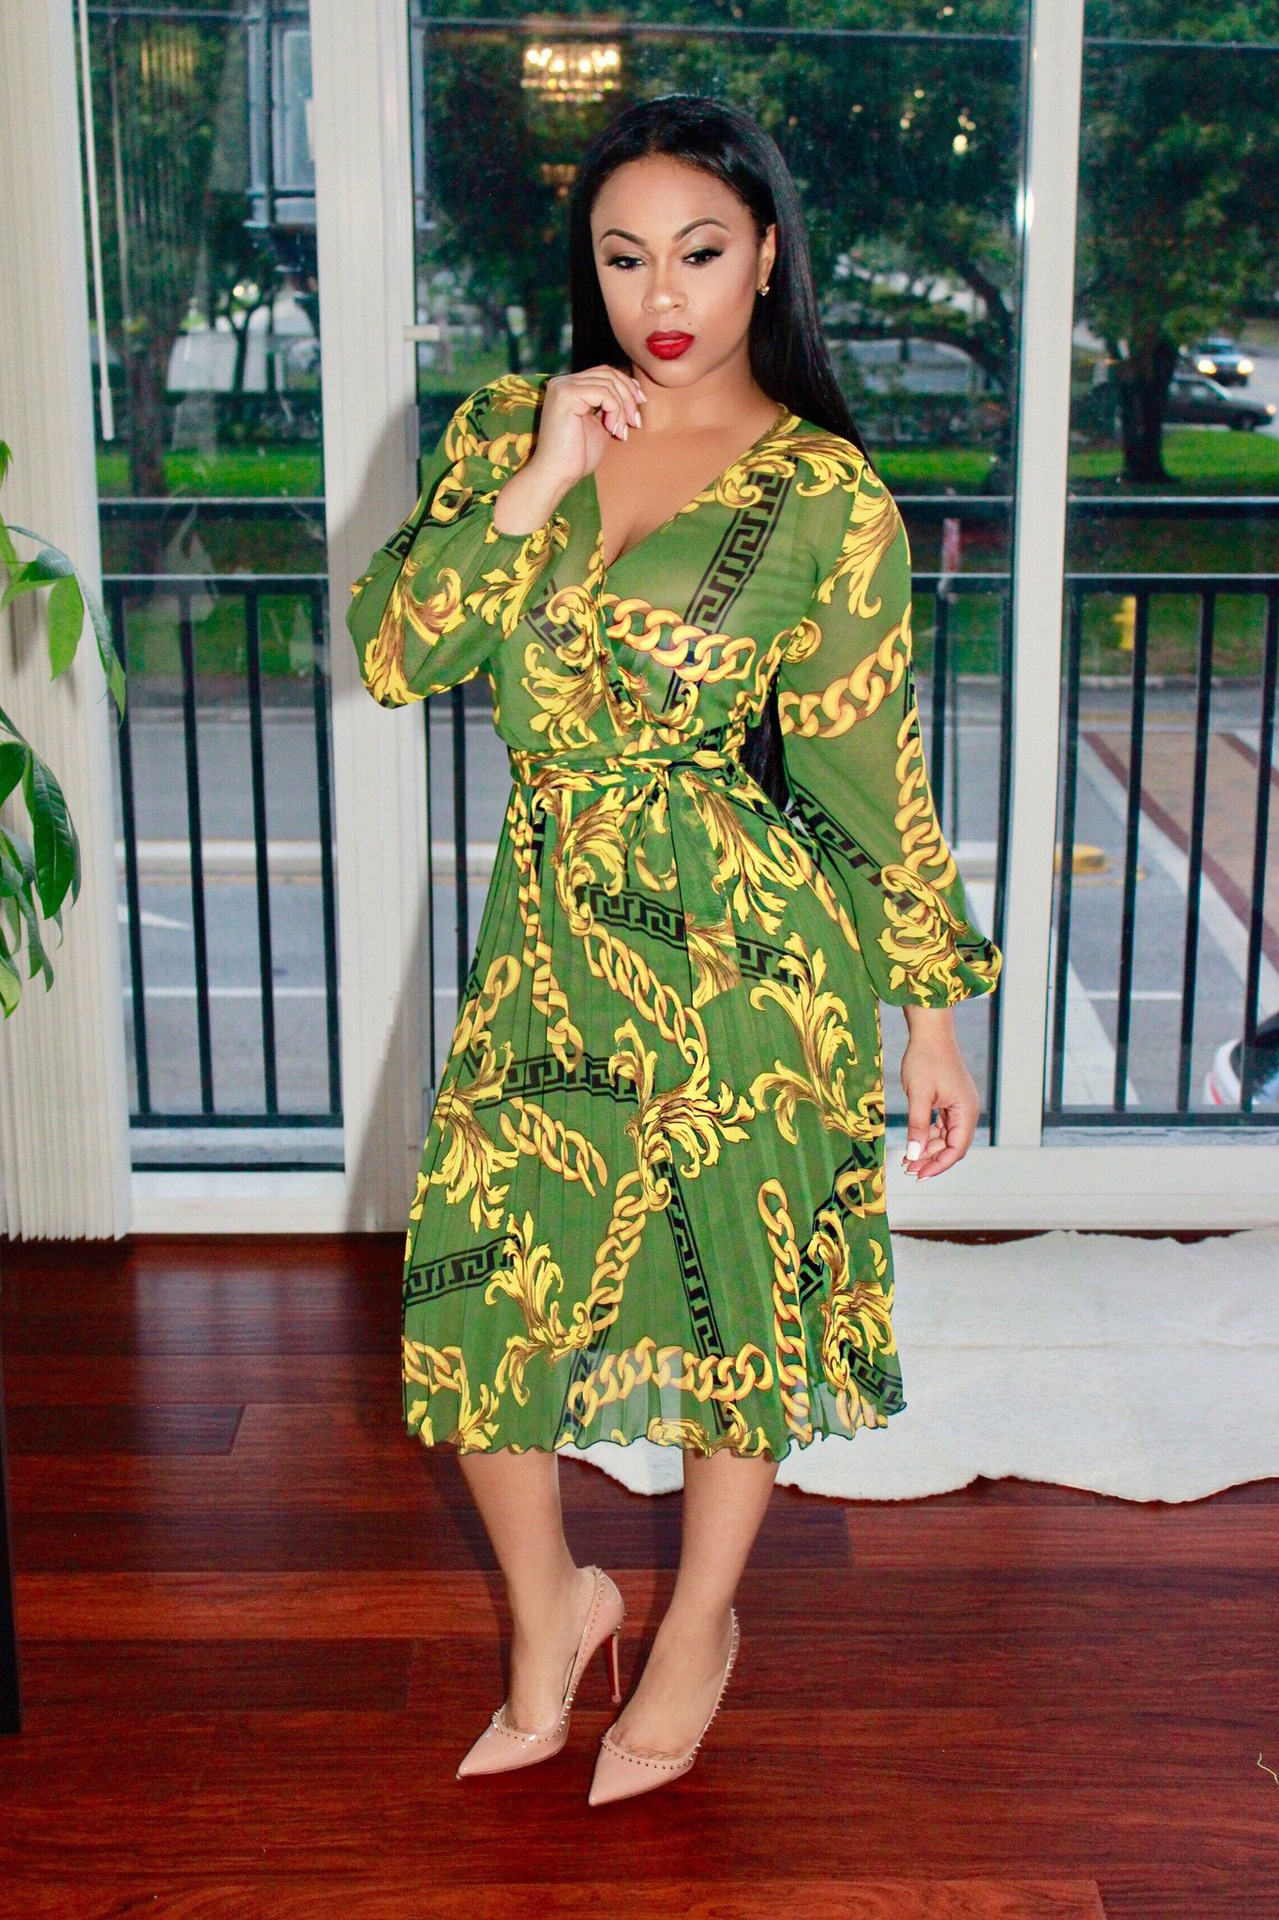 e1c78be1eb4a9 Formal African Print Midi Dress Other dresses dressesss